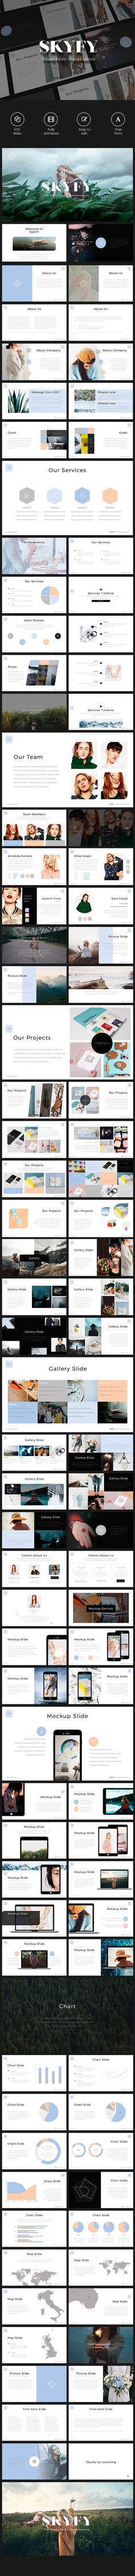 SKYFY PowerPoint Template (PowerPoint Templates)